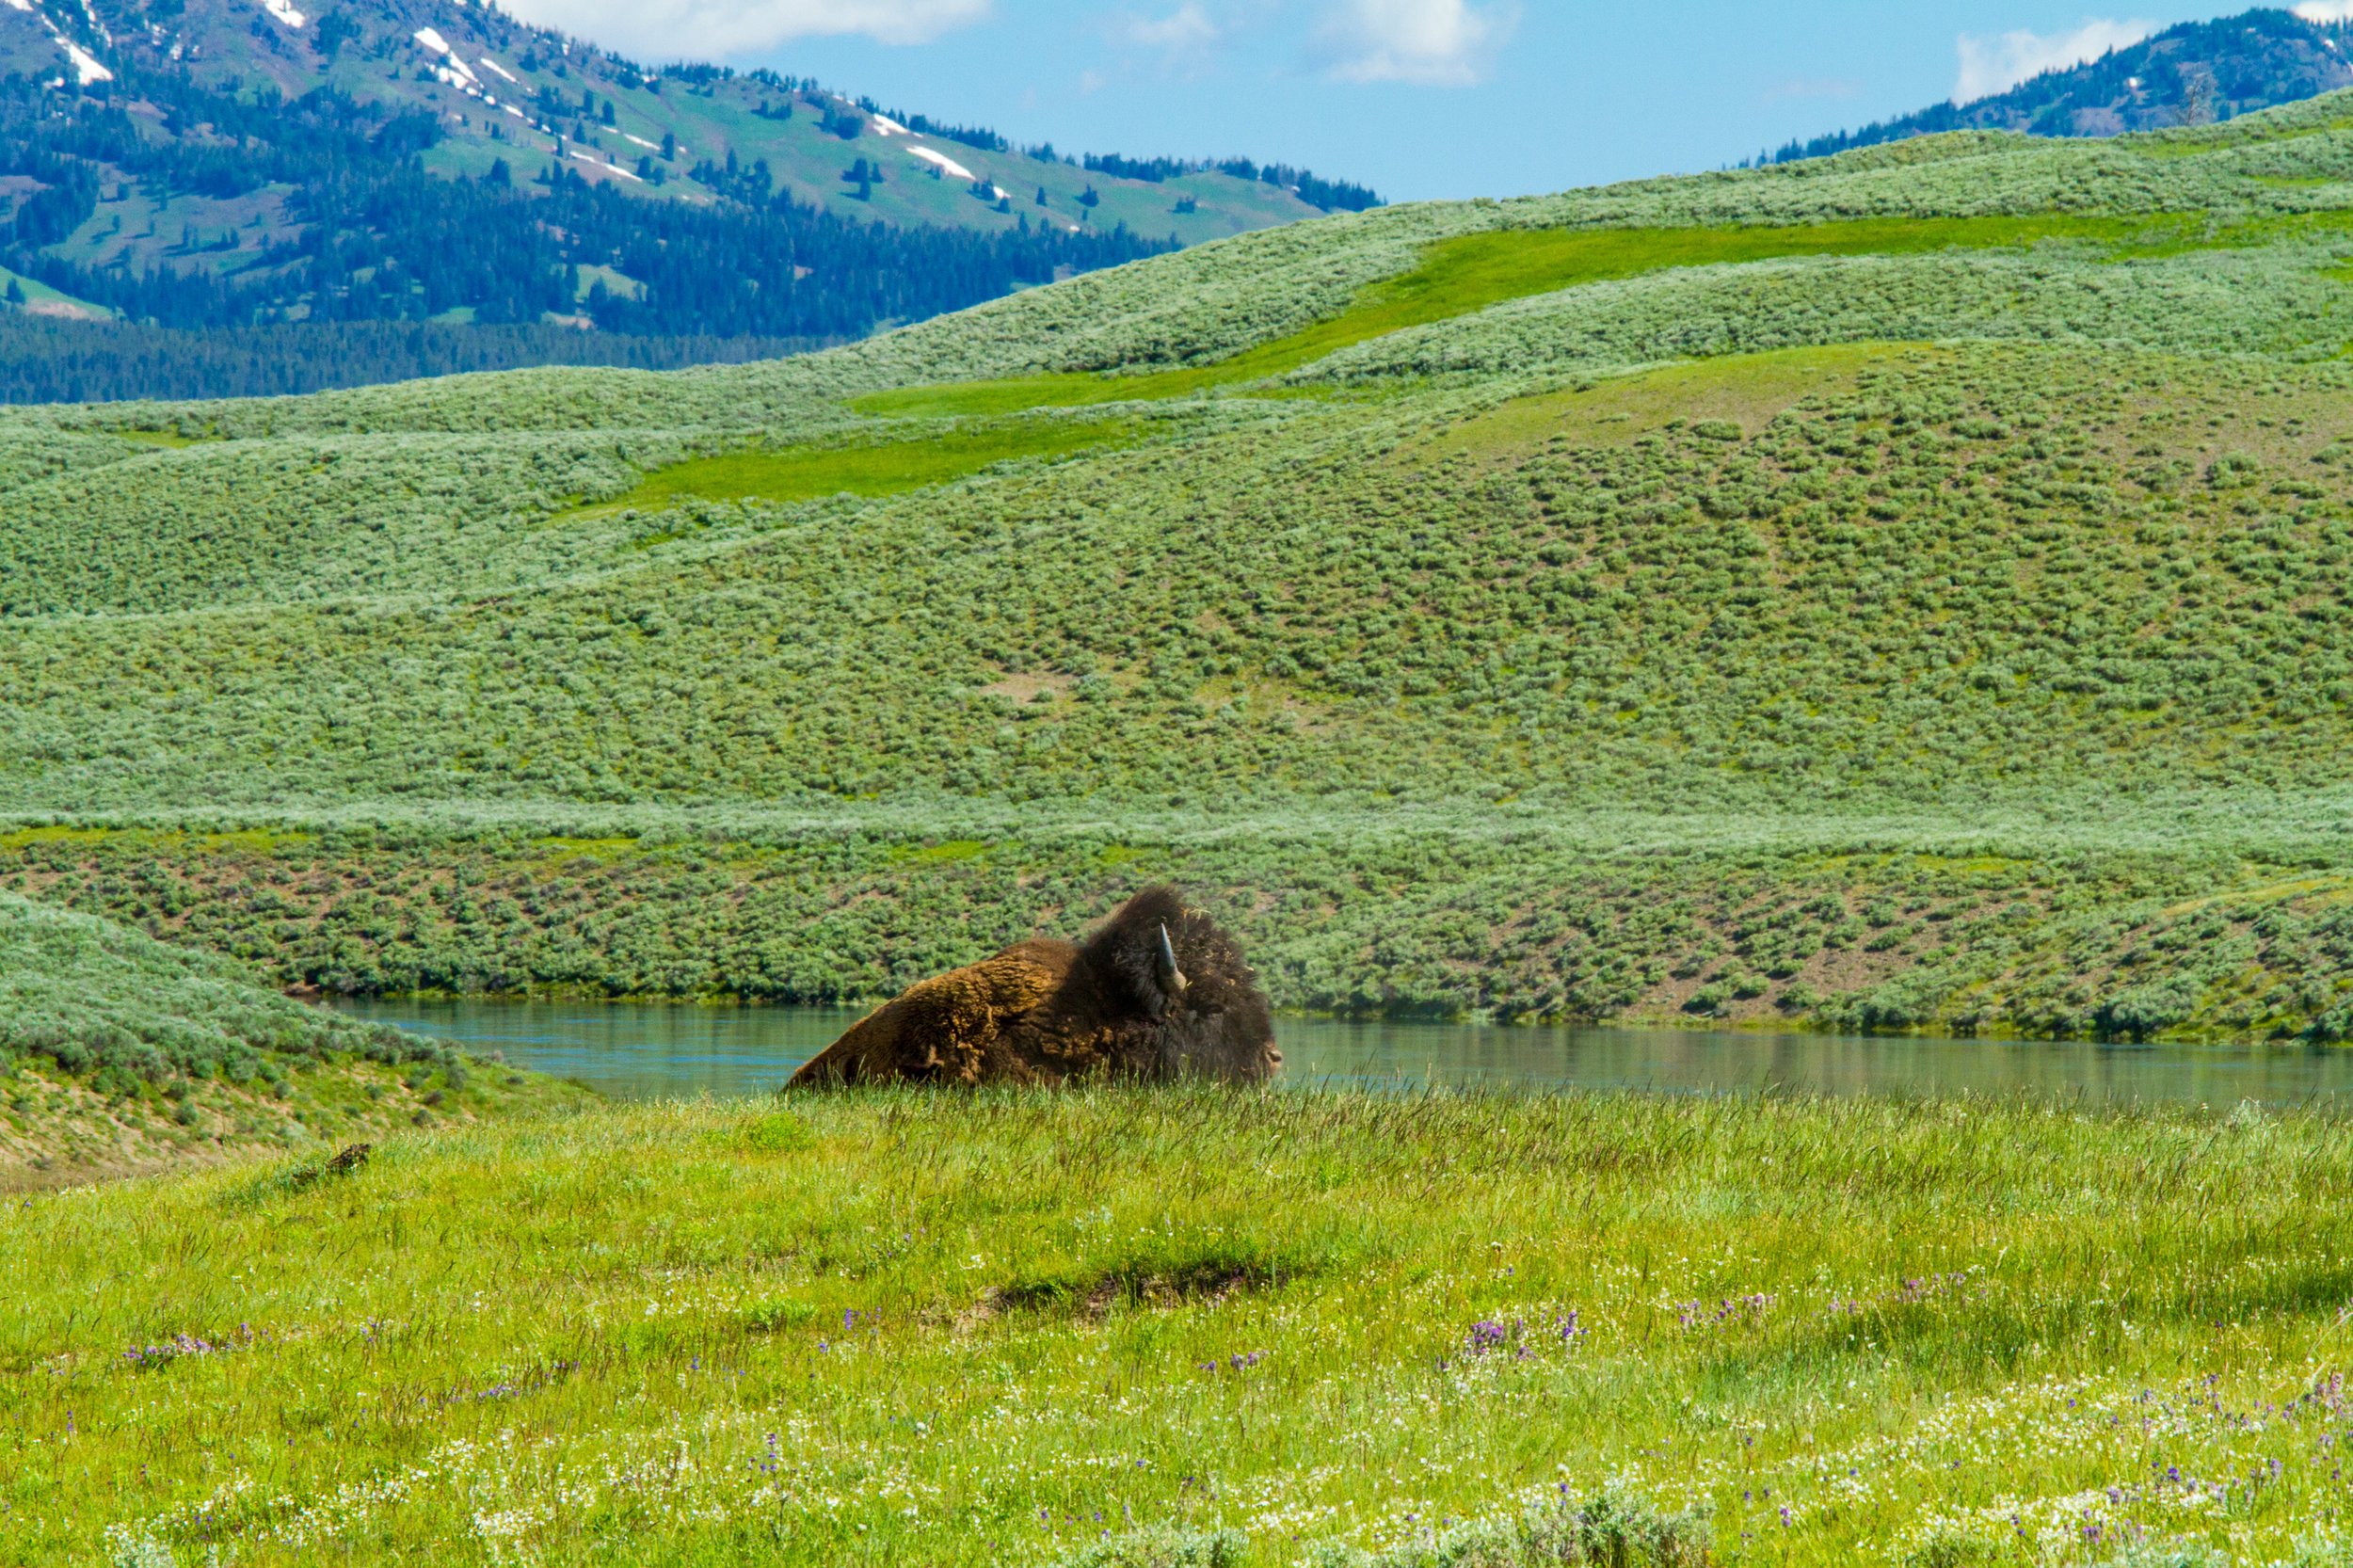 Hayden Valley, Yellowstone National Park, Image # 5211